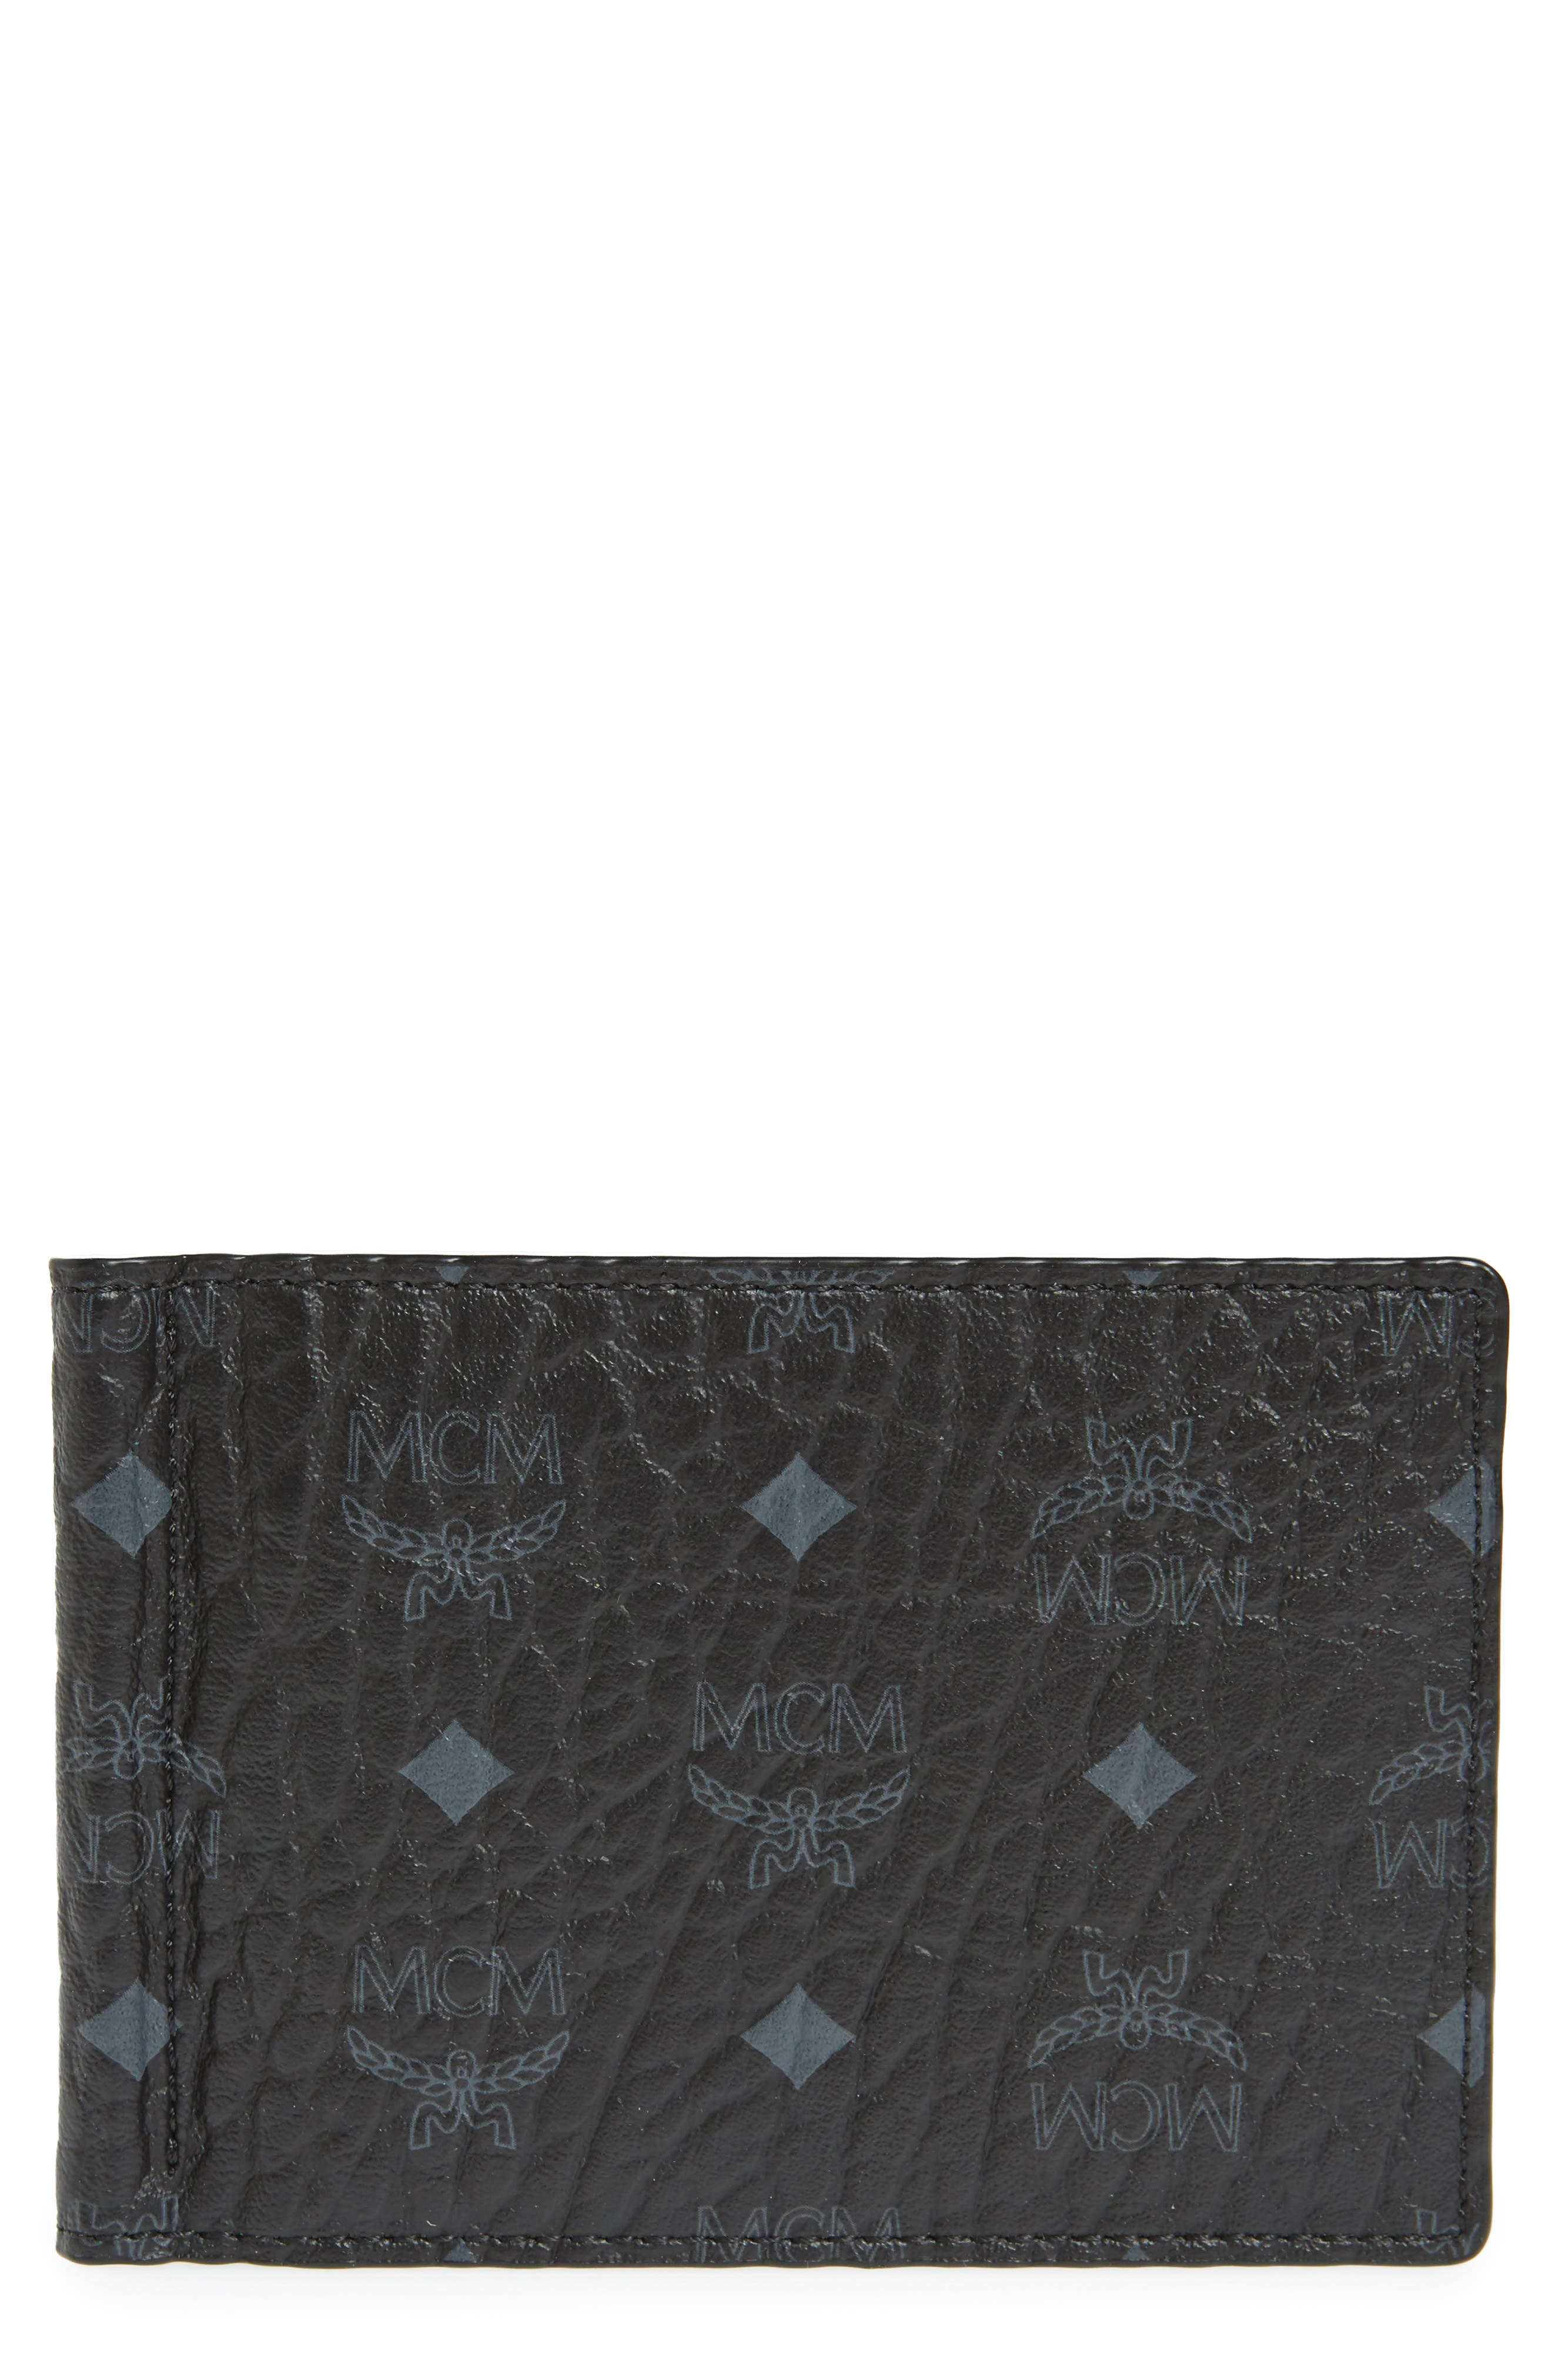 Alternate Image 1 Selected - MCM Visetos Faux Leather Wallet